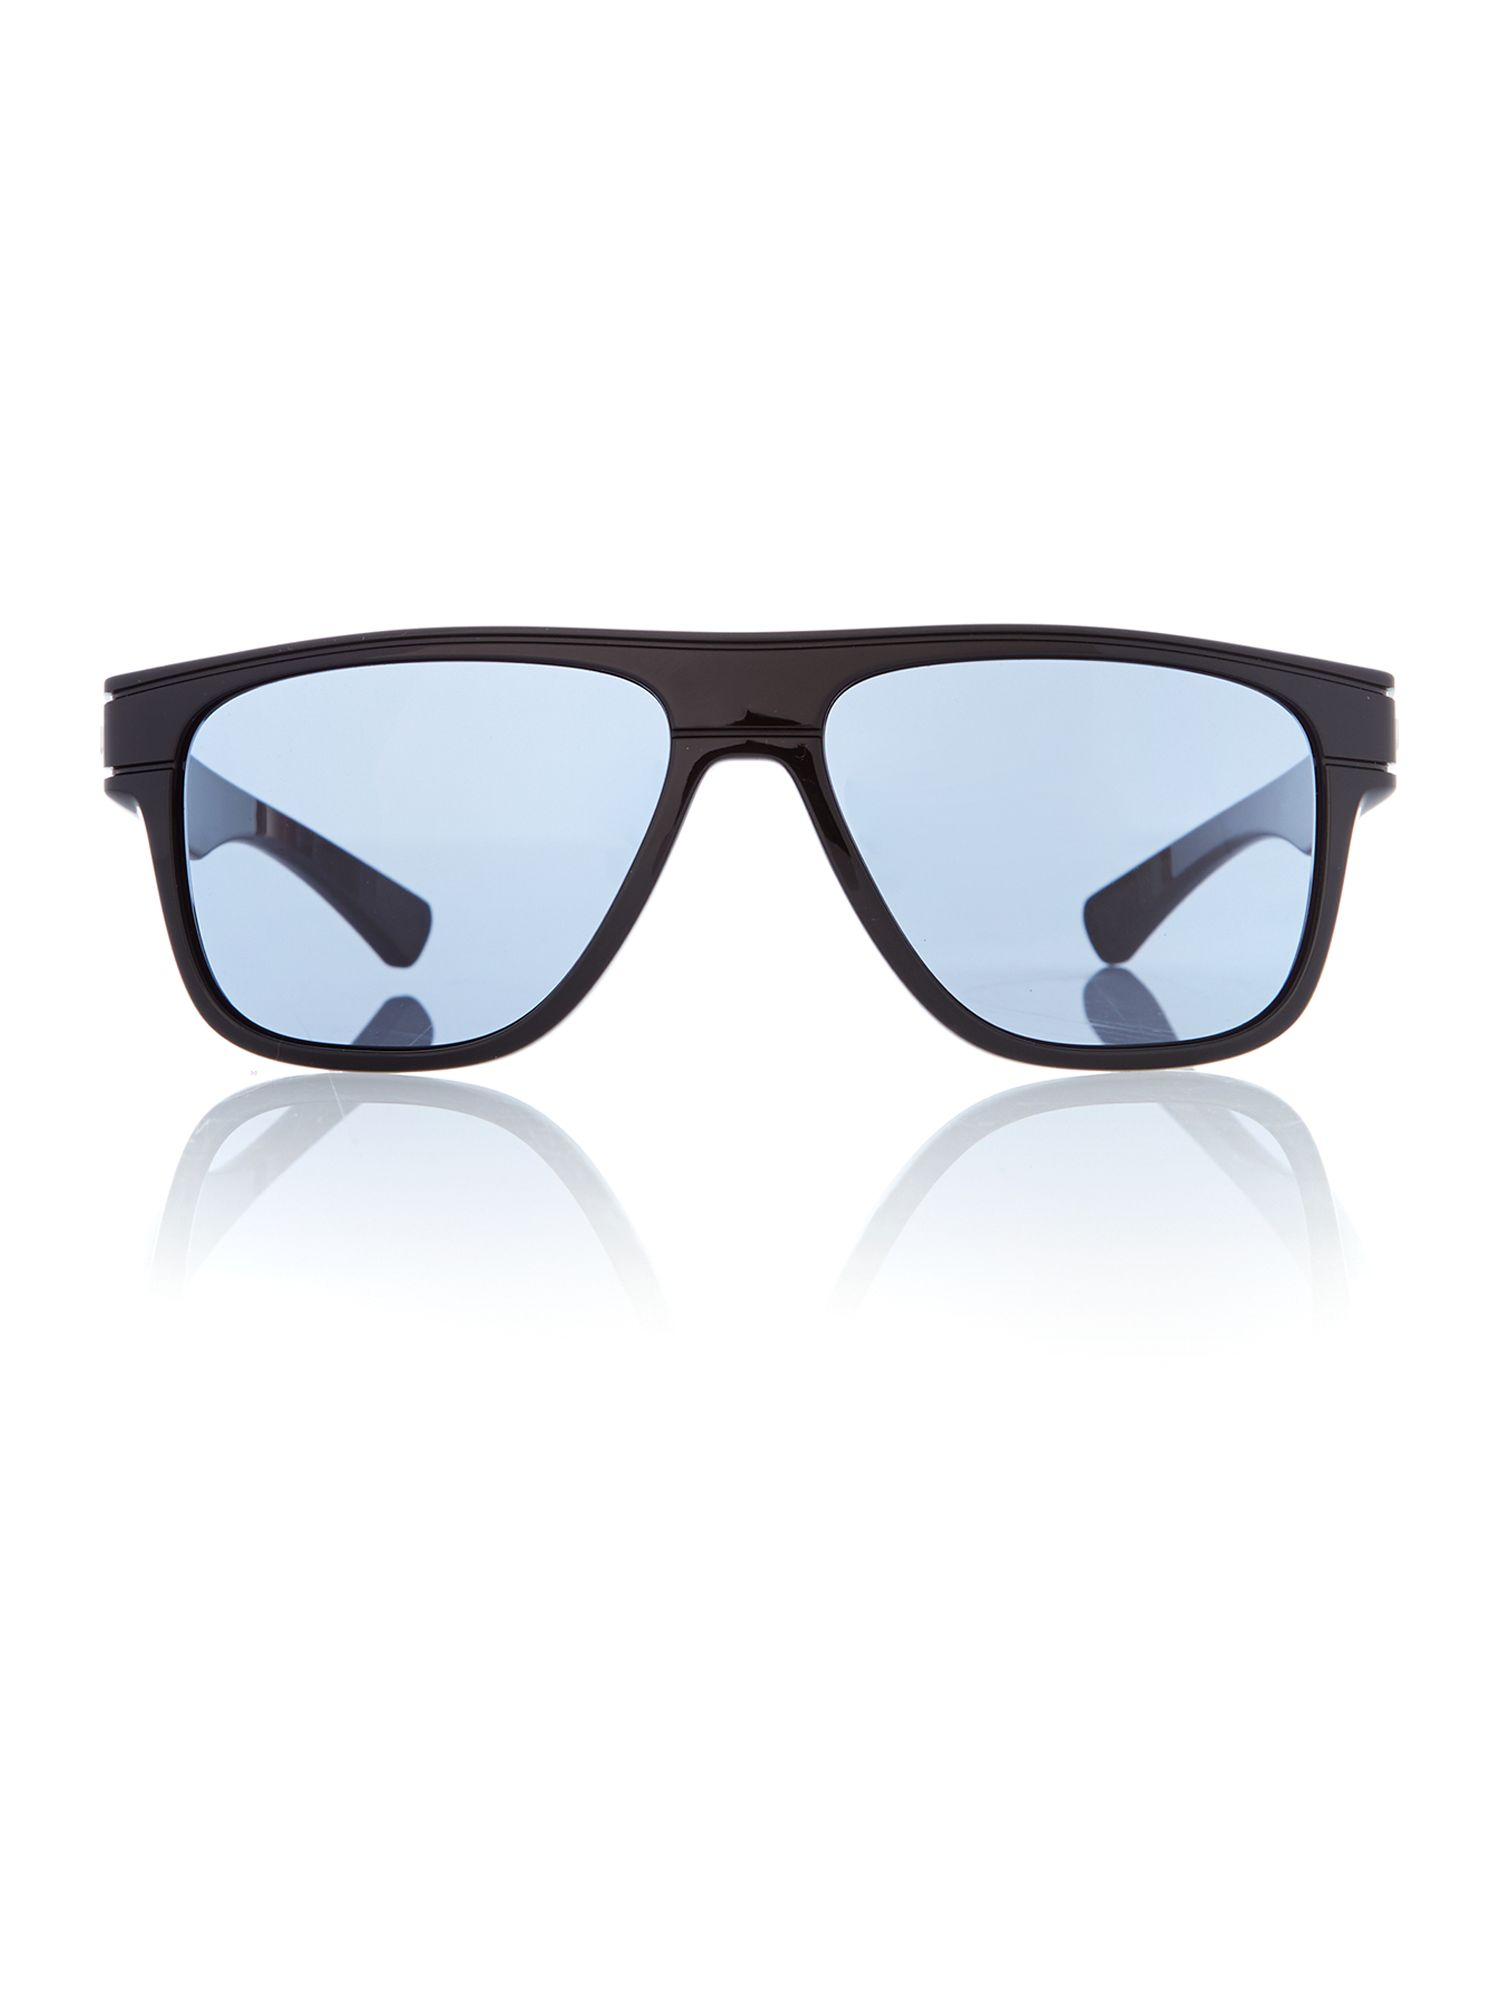 Polished Black Breadbox Sunglasses